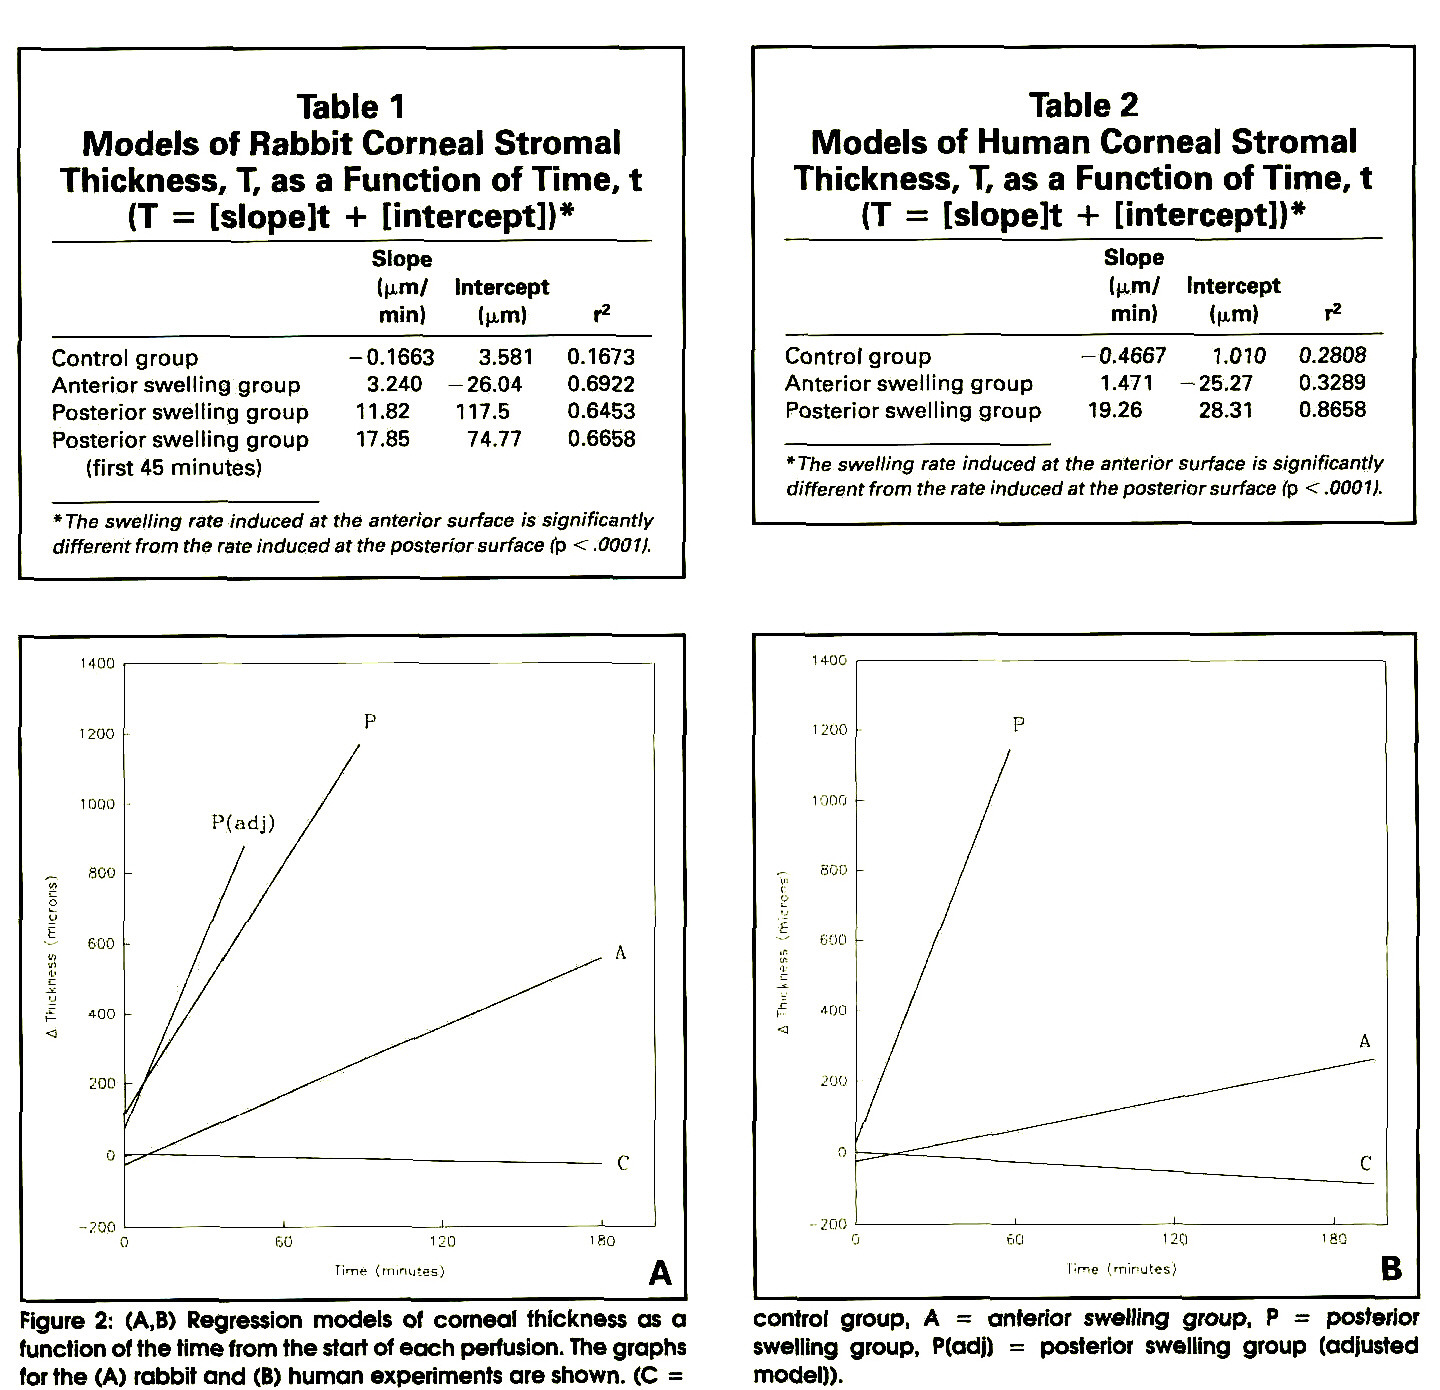 Table 1Models of Rabbit Corneal Stromal Thickness, T, as a Function of Time, t (T = [slopelt + [intercept])*Table 2Models of Human Corneal Stromal Thickness, T, as a Function of Time, t (T = [slopelt 4- [intercept])*Figure 2: (A,B) Regression models of corneal thickness as a function of the time from the start of each perfusion. The graphs for the (A) rabbit and (B) human experiments are shown. (C = control group, A = anterior swelling group, P = posterior swelling group, P(ad|) = posterior swelling group (adjusted model)).